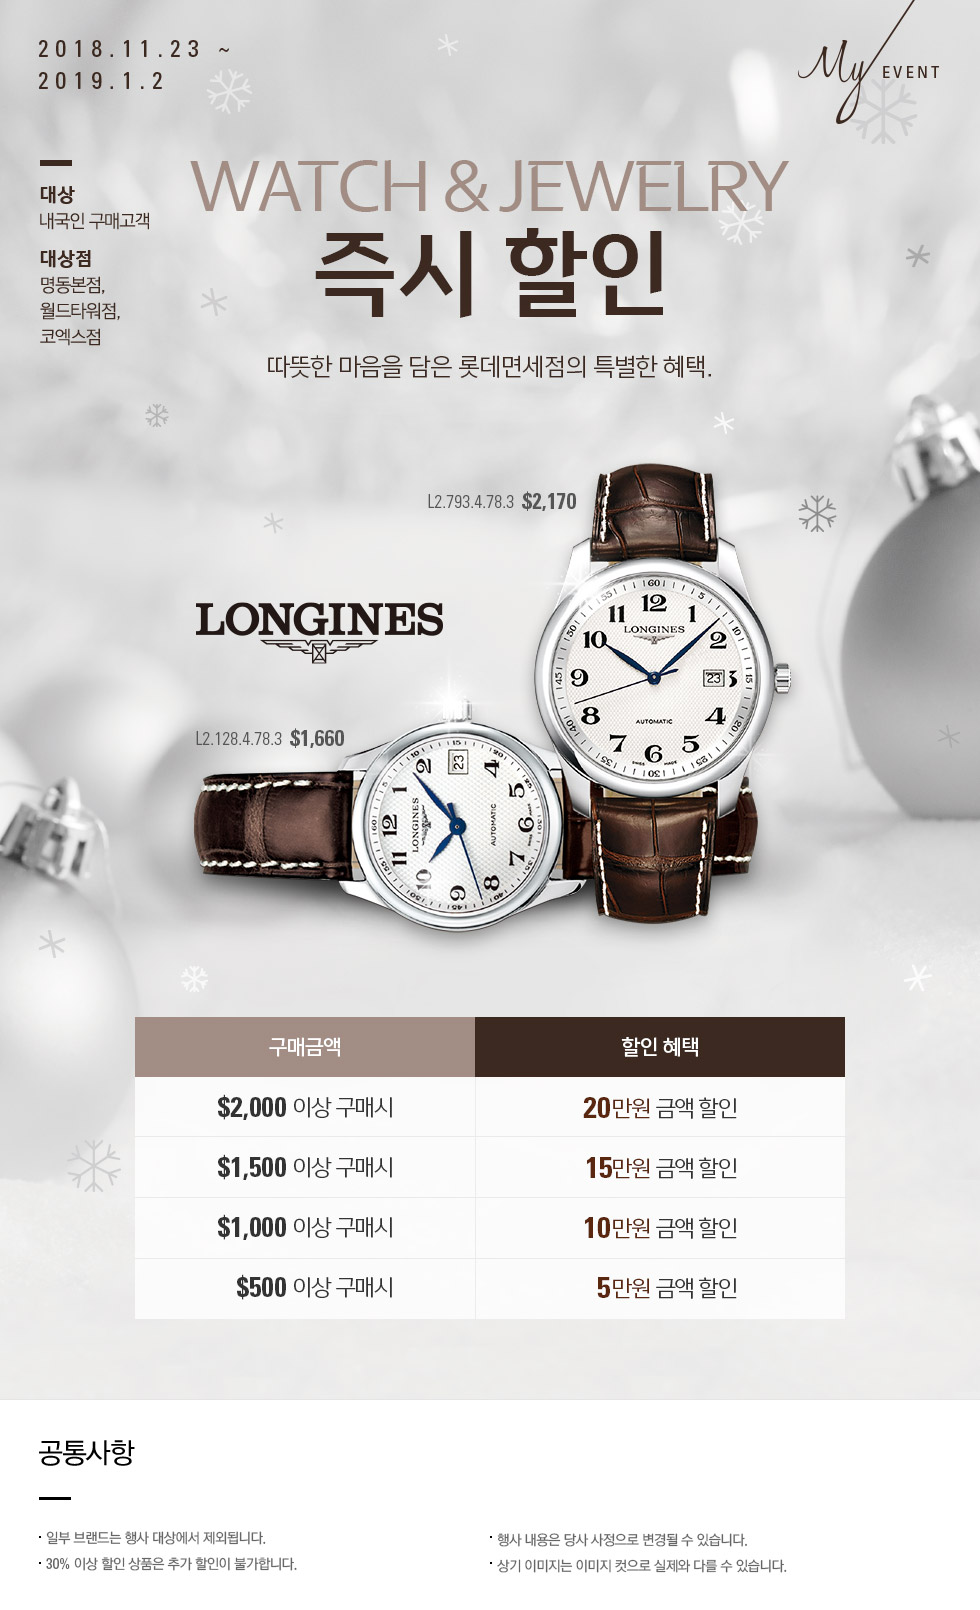 WATCH and JEWELRY 즉시 할인